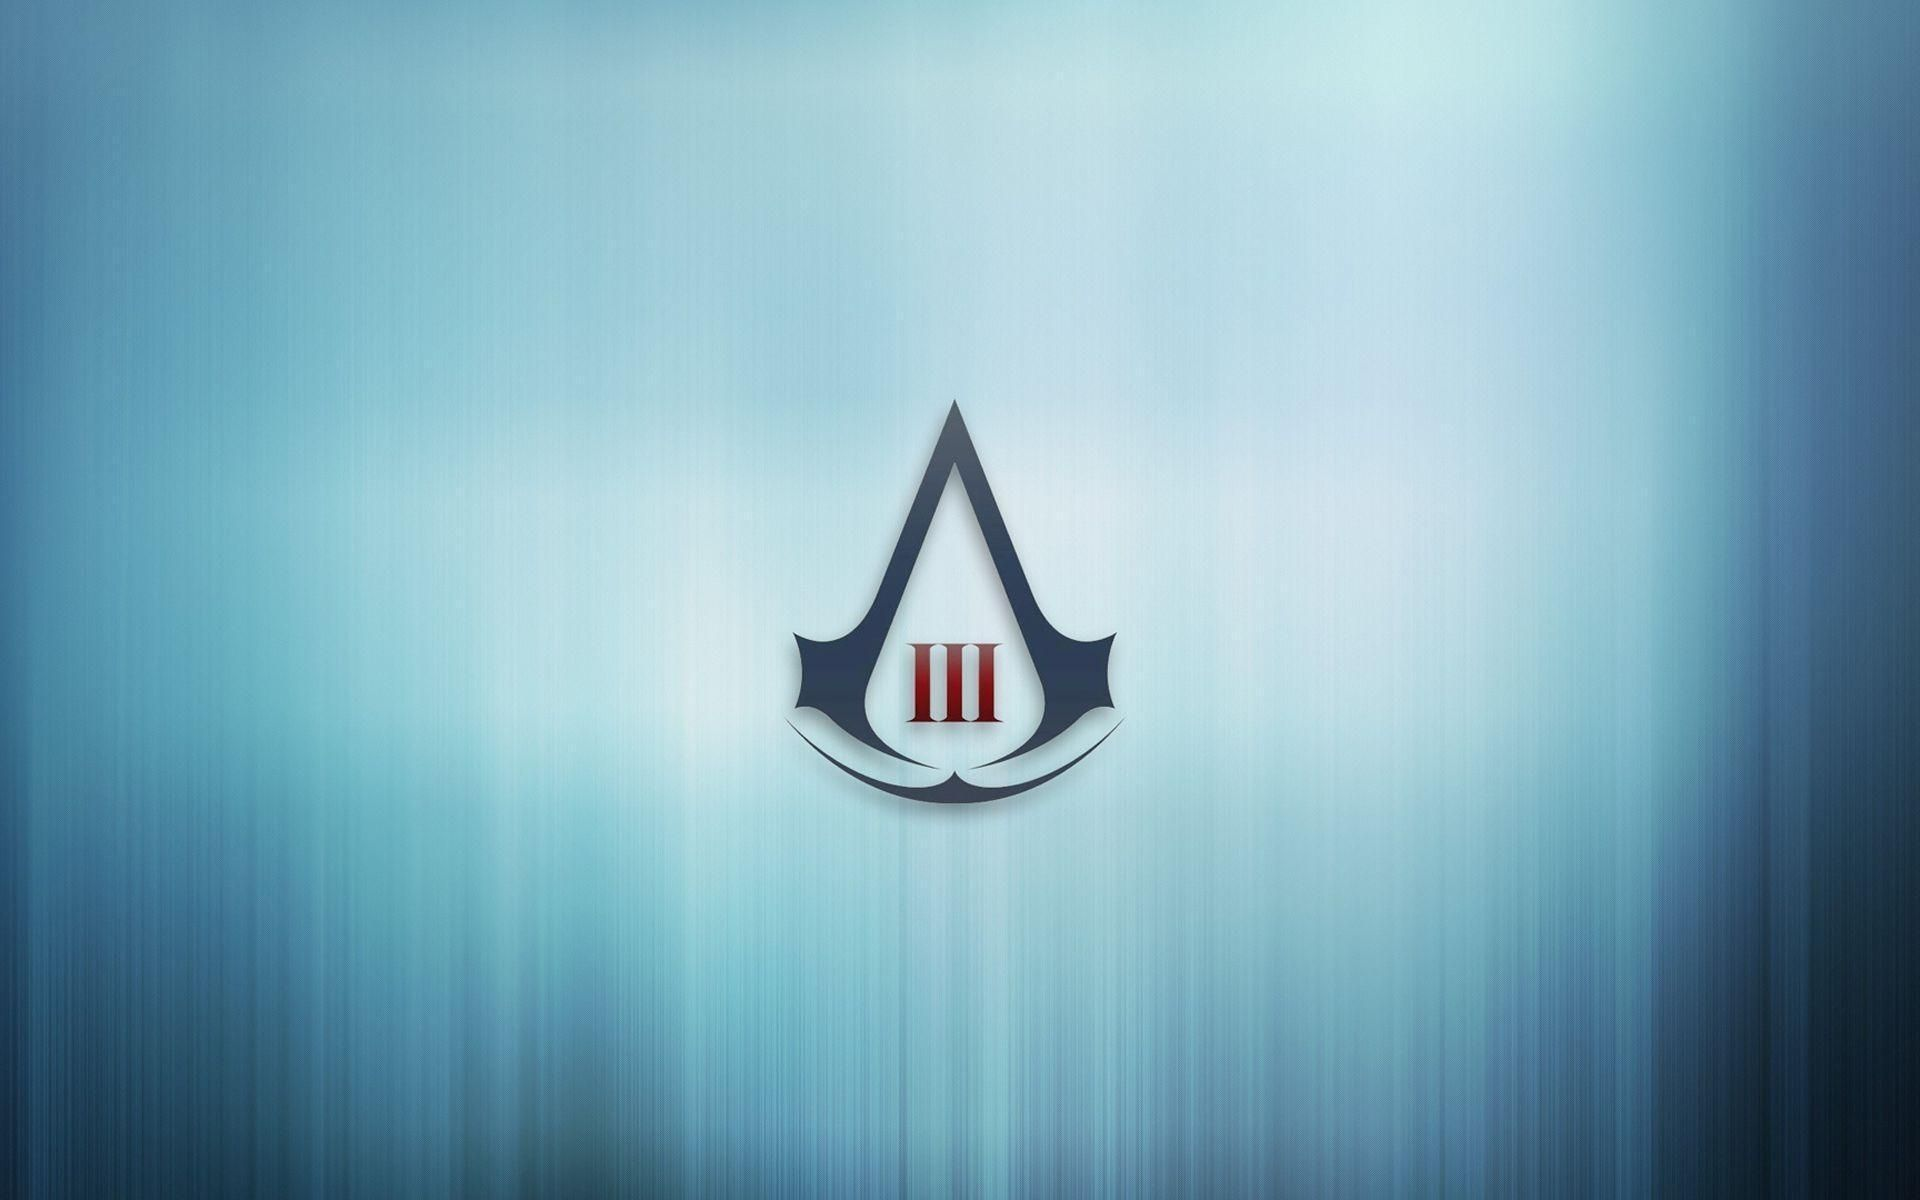 10 Top Assassin S Creed Logo Wallpaper Hd Full Hd 1080p For Pc Background 2019 Free Download Logo Wallpaper Hd Assassins Creed Logo Wallpaper